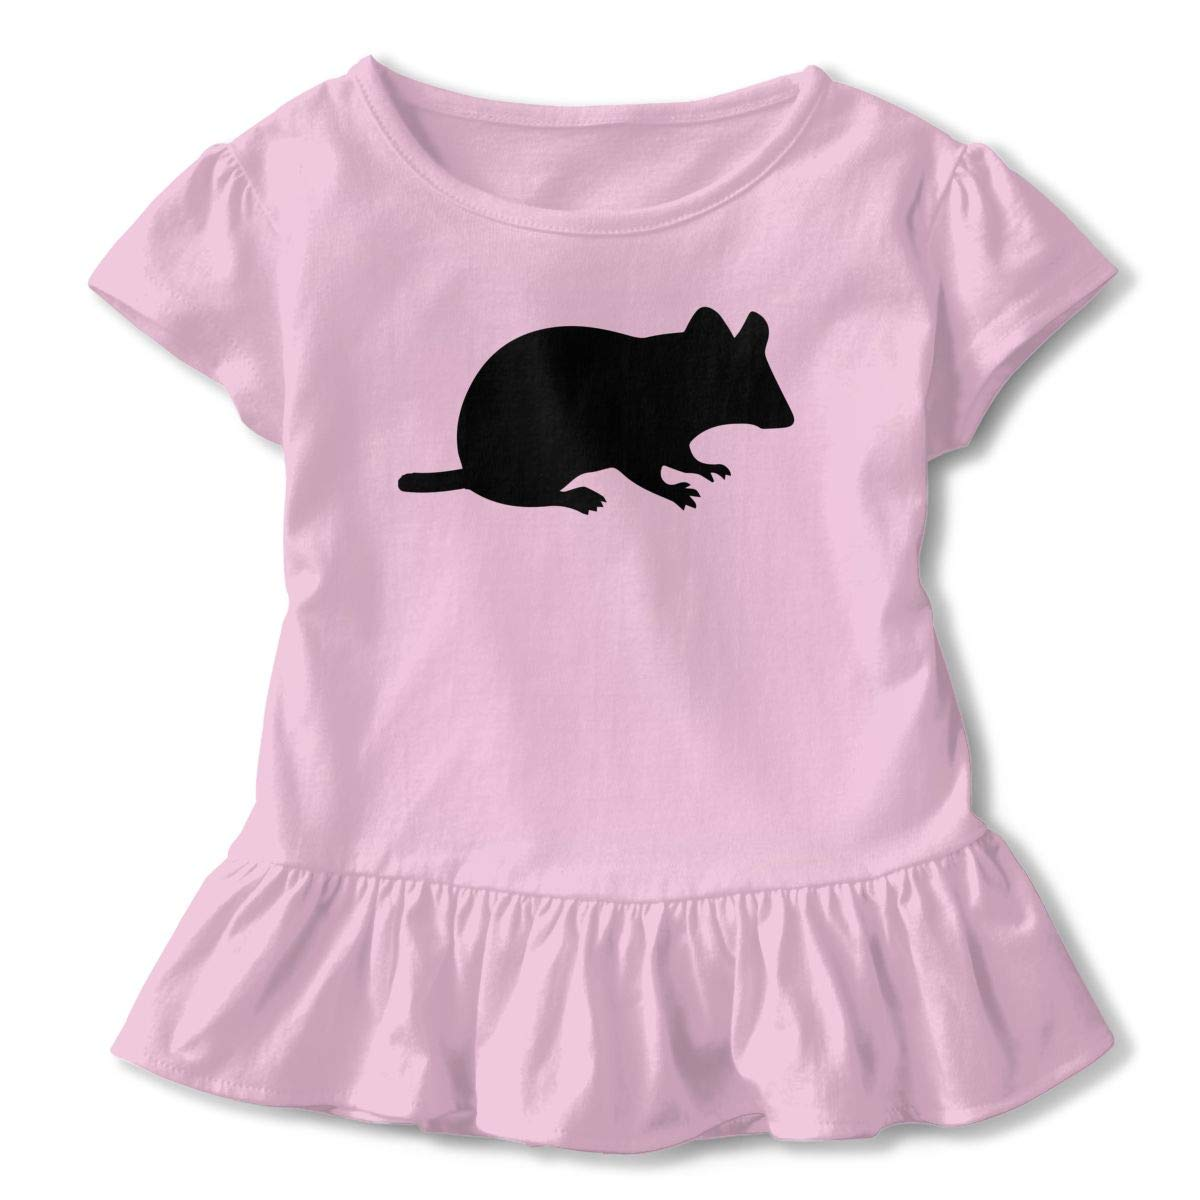 Mice Shirt Comfort Toddler Flounced T Shirts Tops for 2-6T Baby Girls